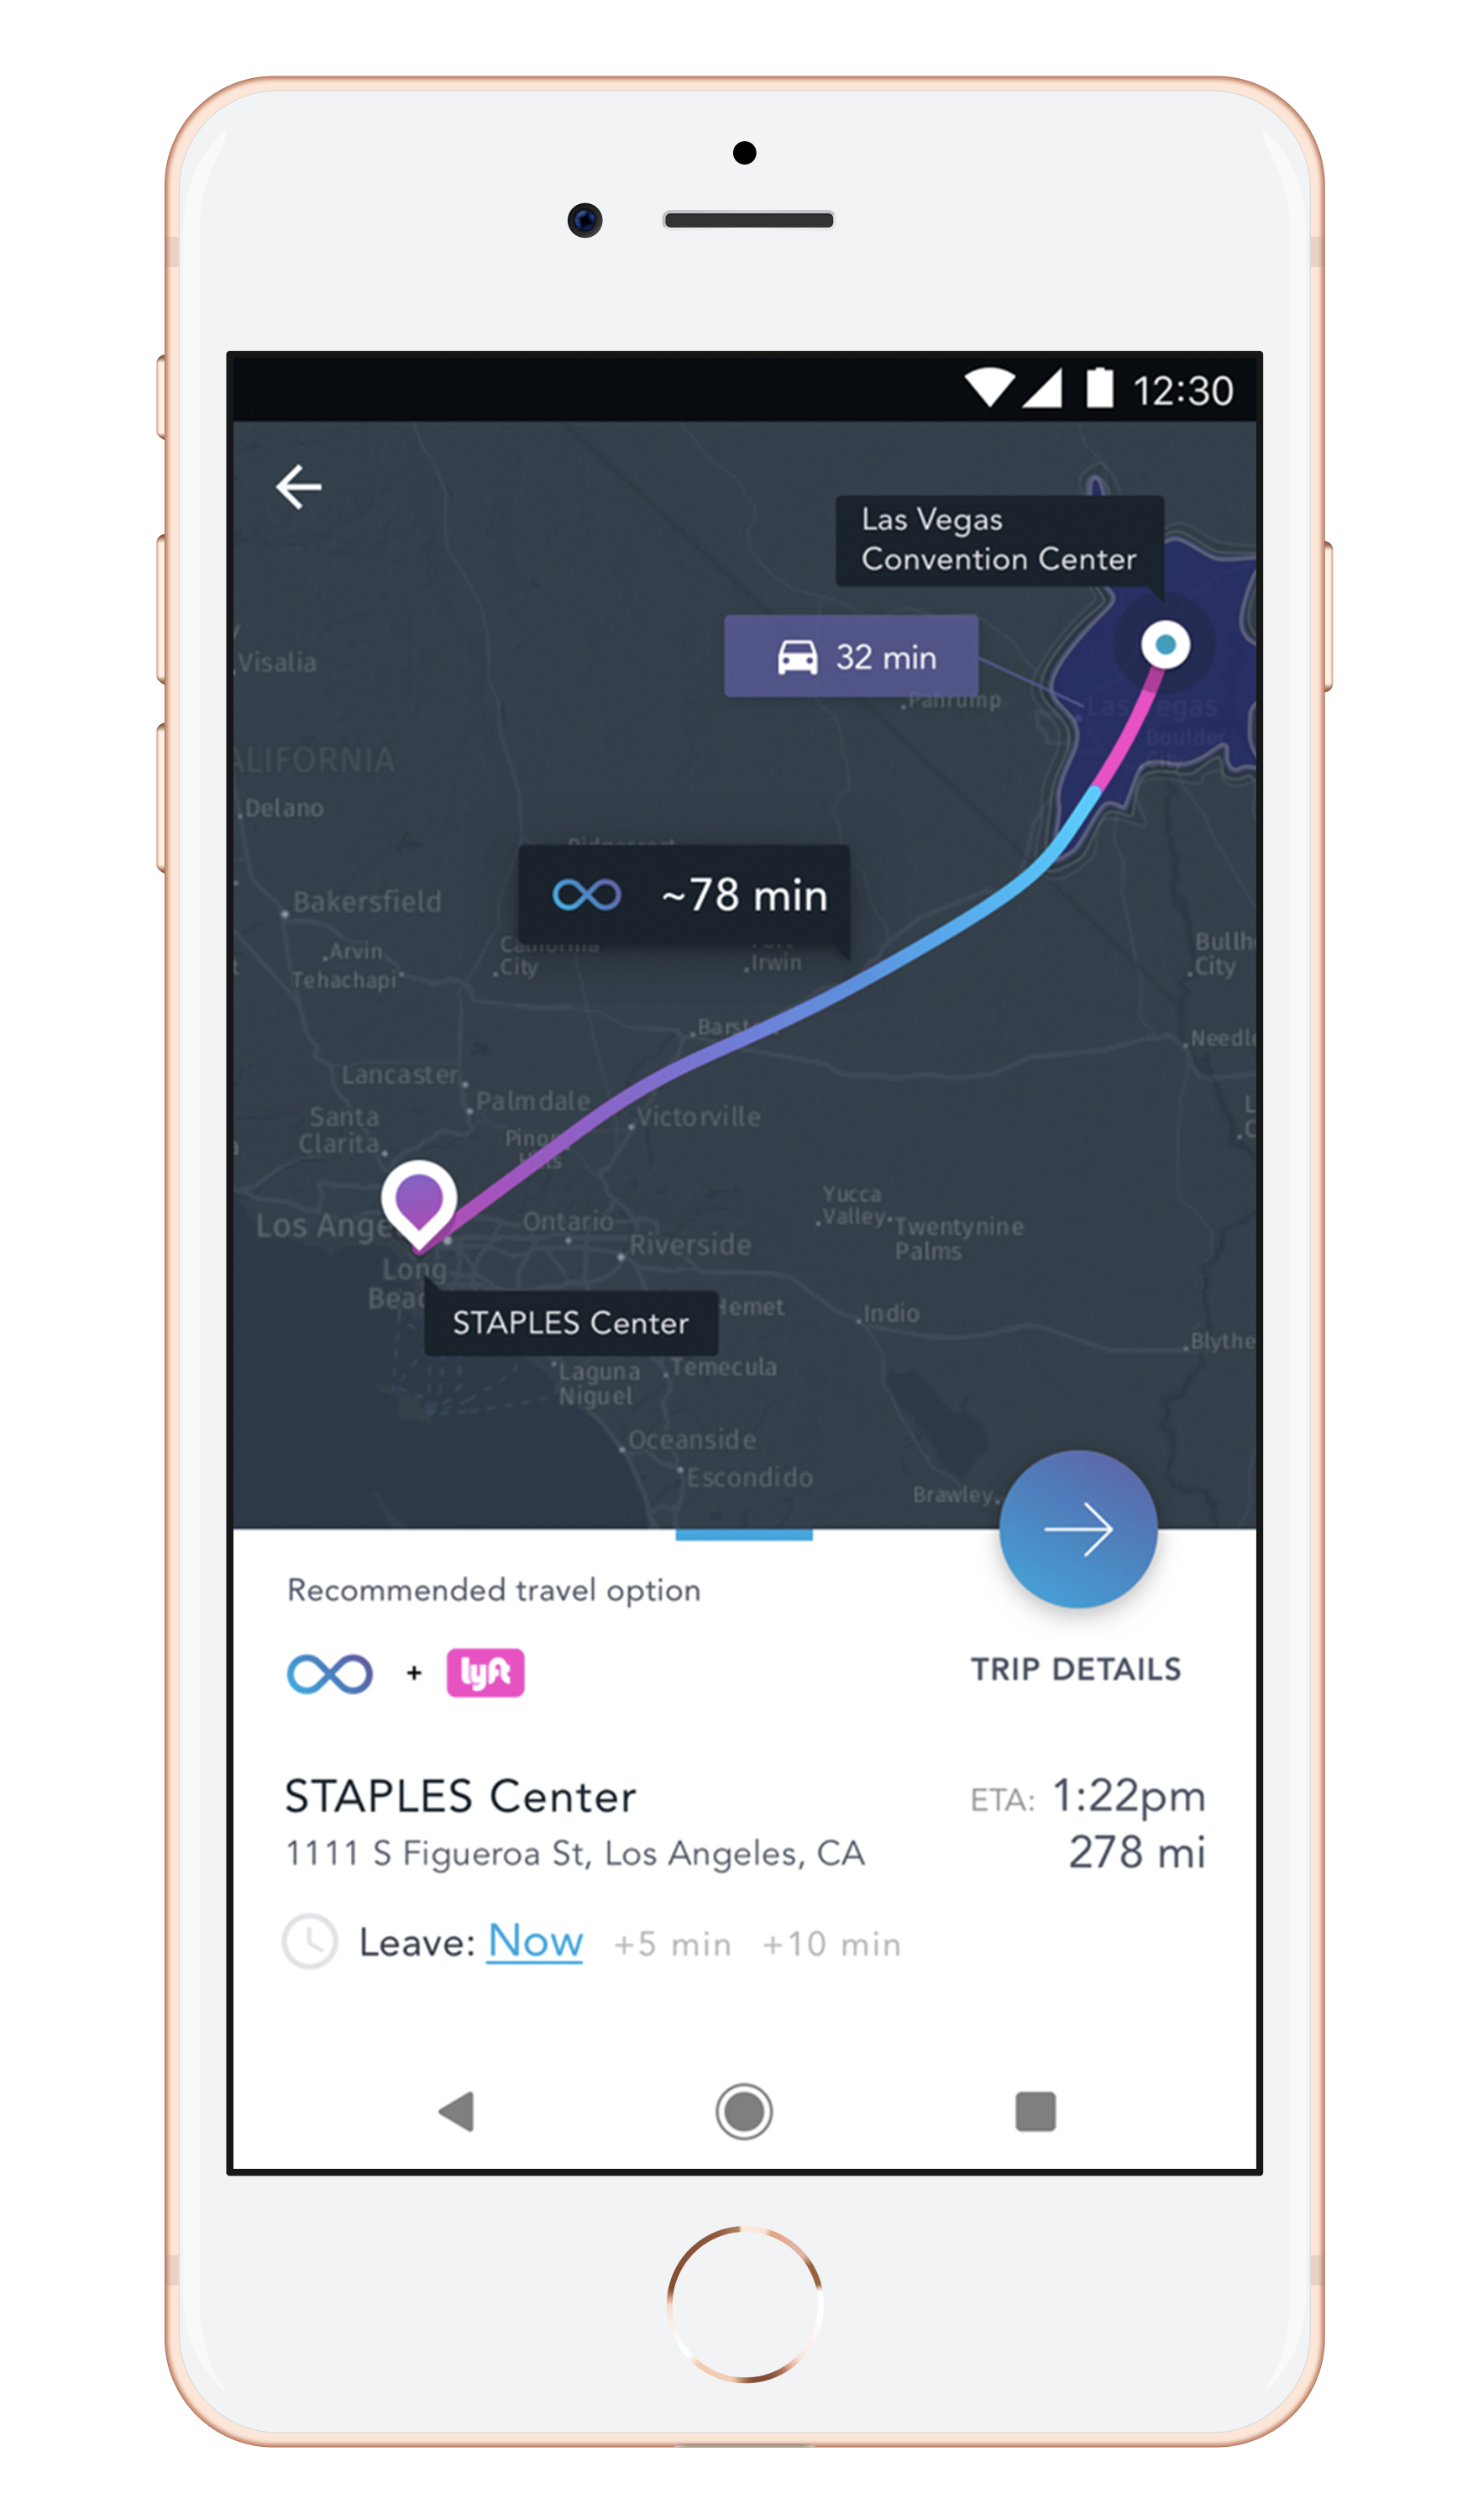 Prototype screen of travel time from Long Beach, CA or Los Vegas, NV, indicating the 32 minute Lyft ride and 78 minute VHO train in a single trip.